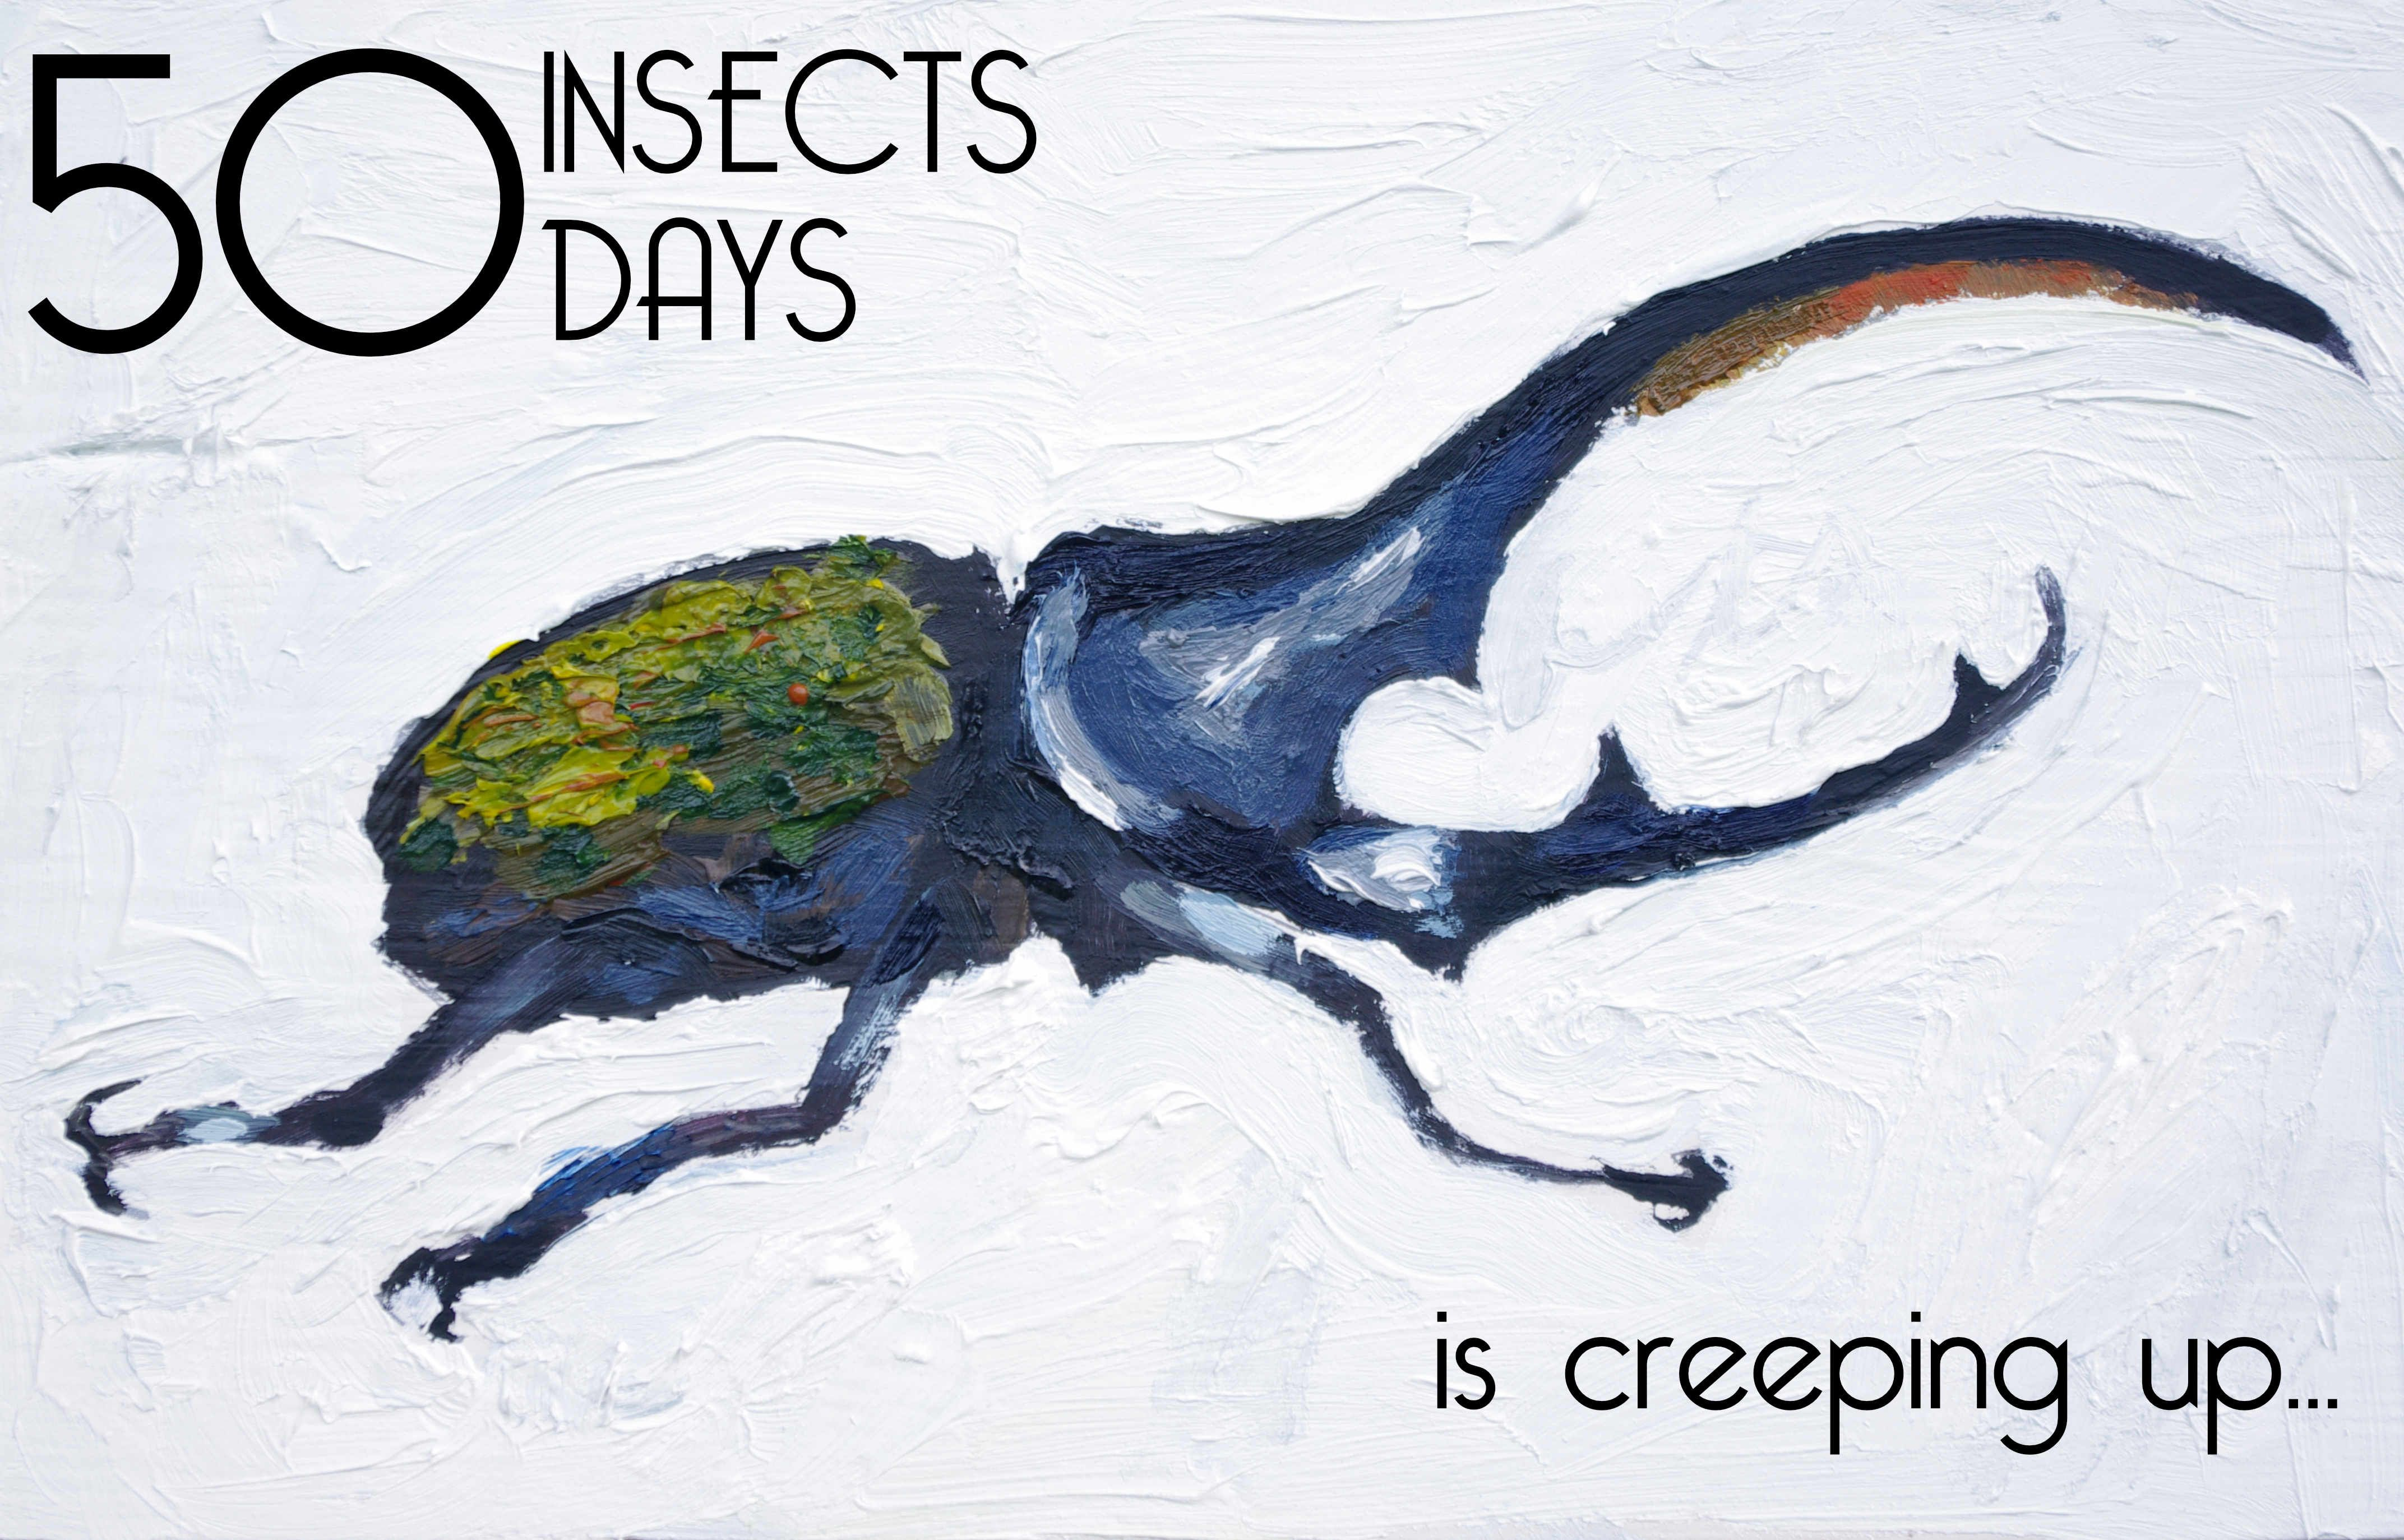 50 Insects Is One Week Away!